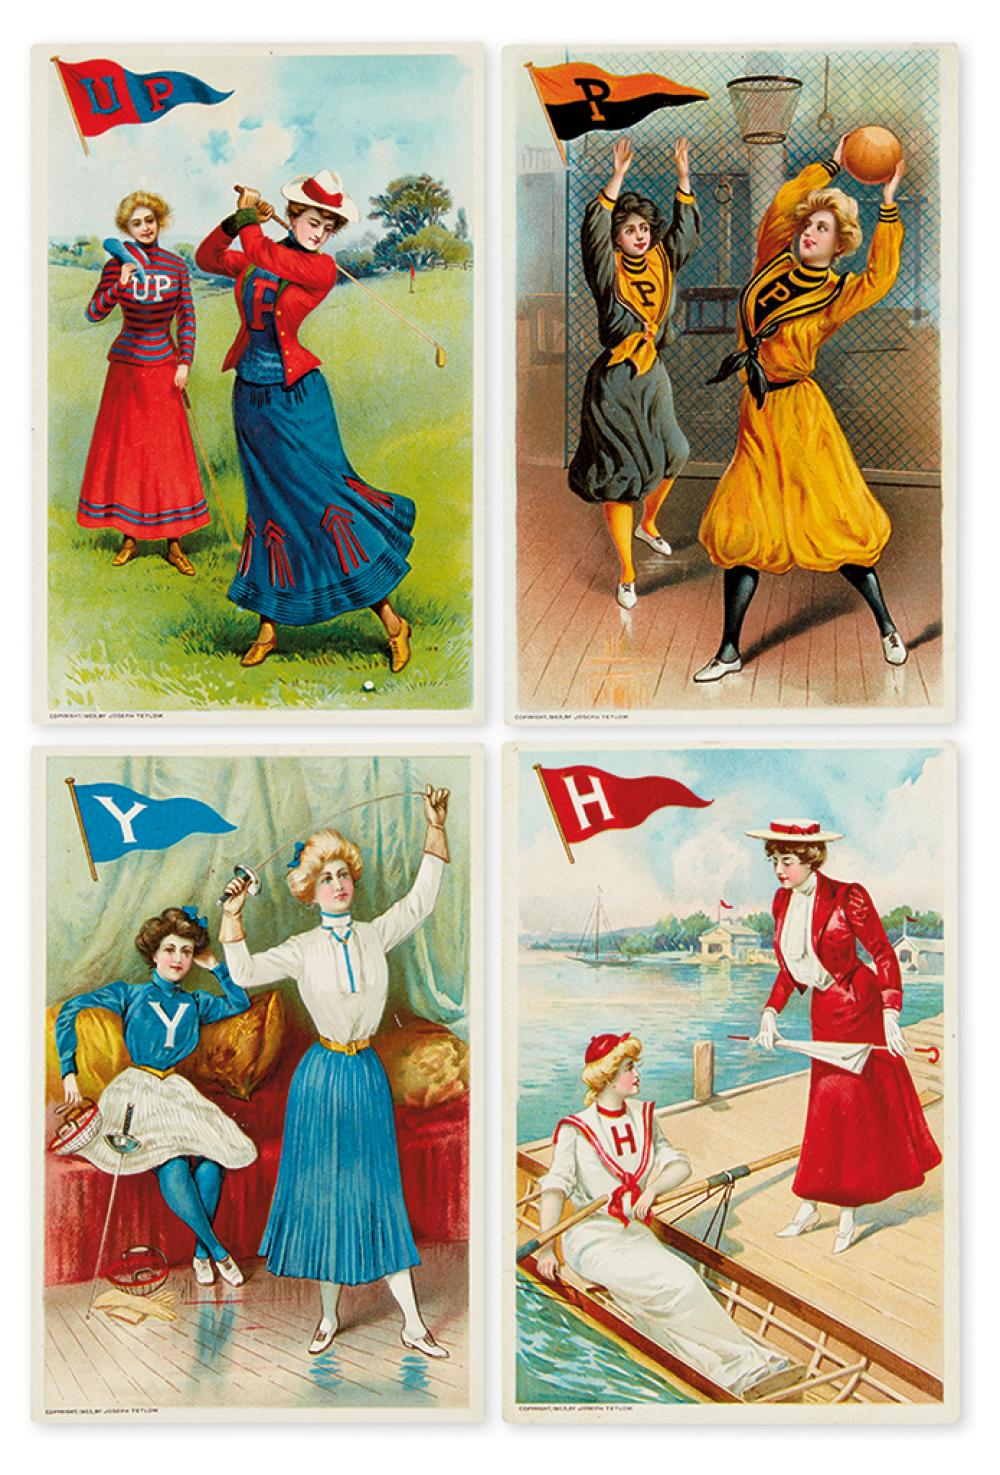 (TRADE CARDS.) Four trade cards featuring women''s collegiate sports.